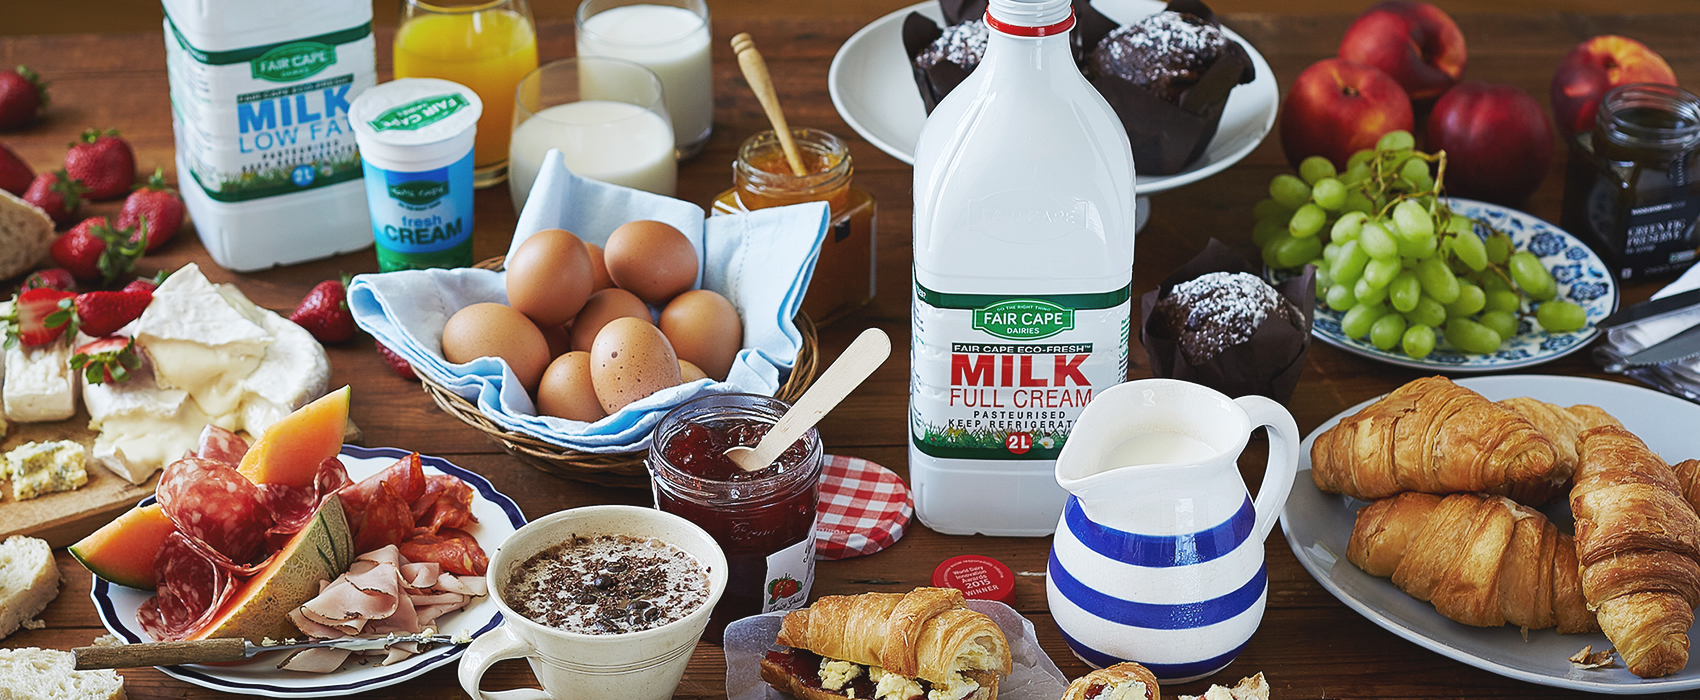 Francois Dairy - Dairy And Egg Distributor - Breakfast